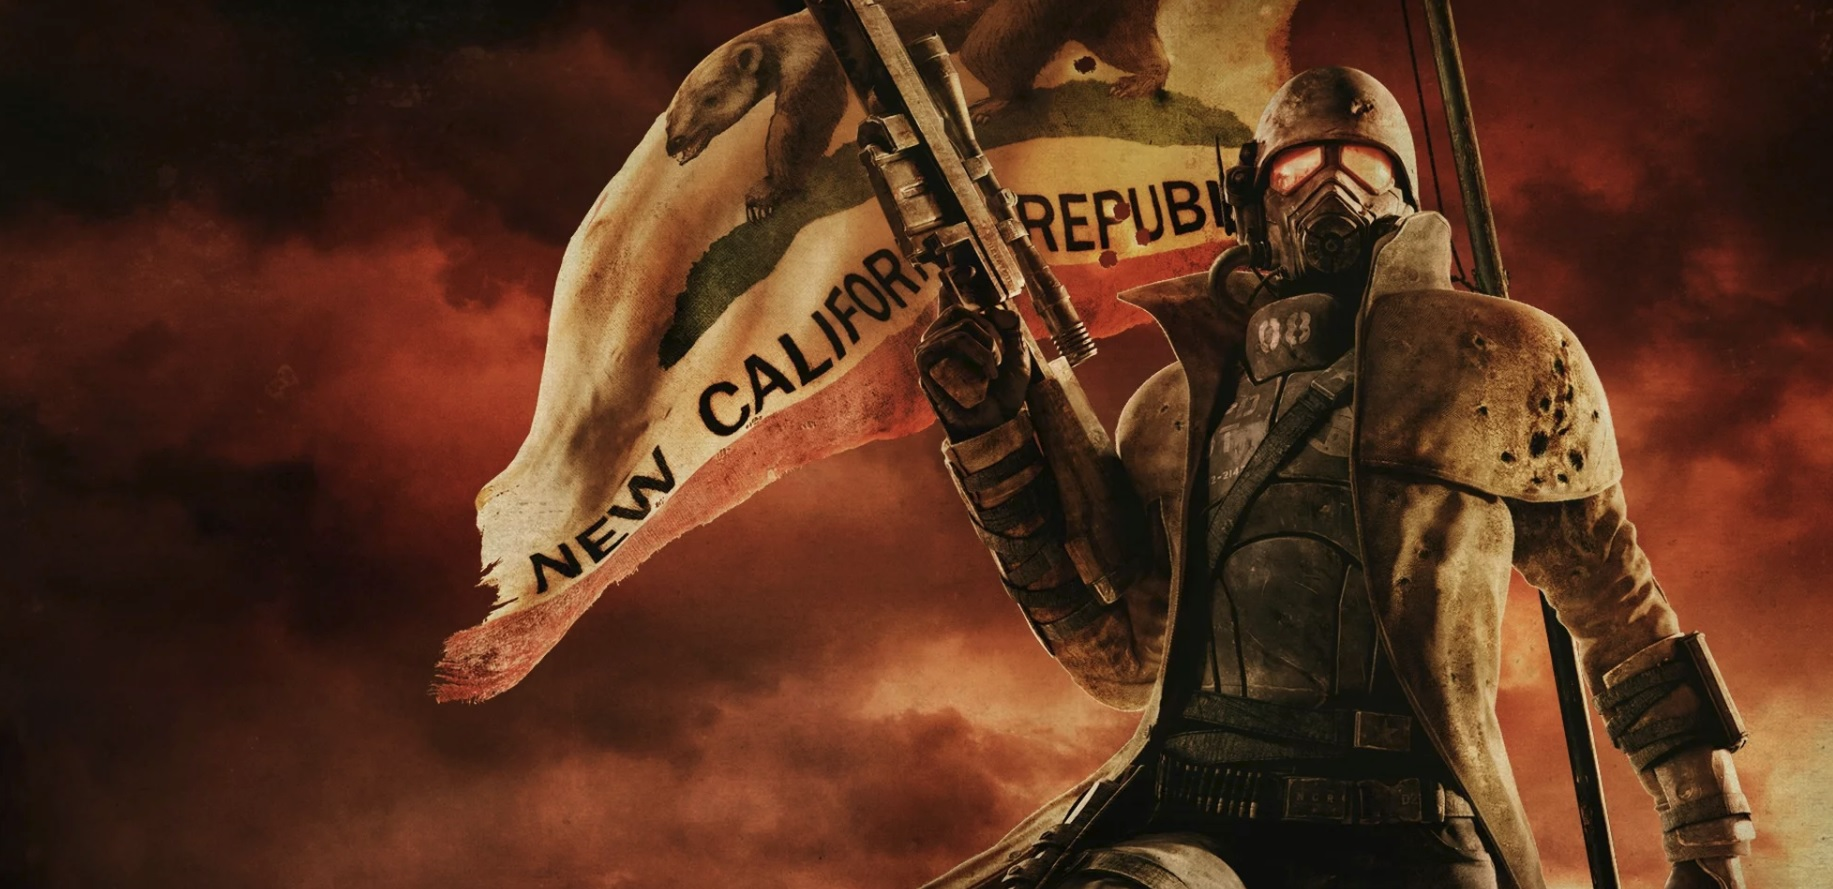 Oh, Microsoft just acquired Fallout: New Vegas dev Obsidian Entertainment screenshot